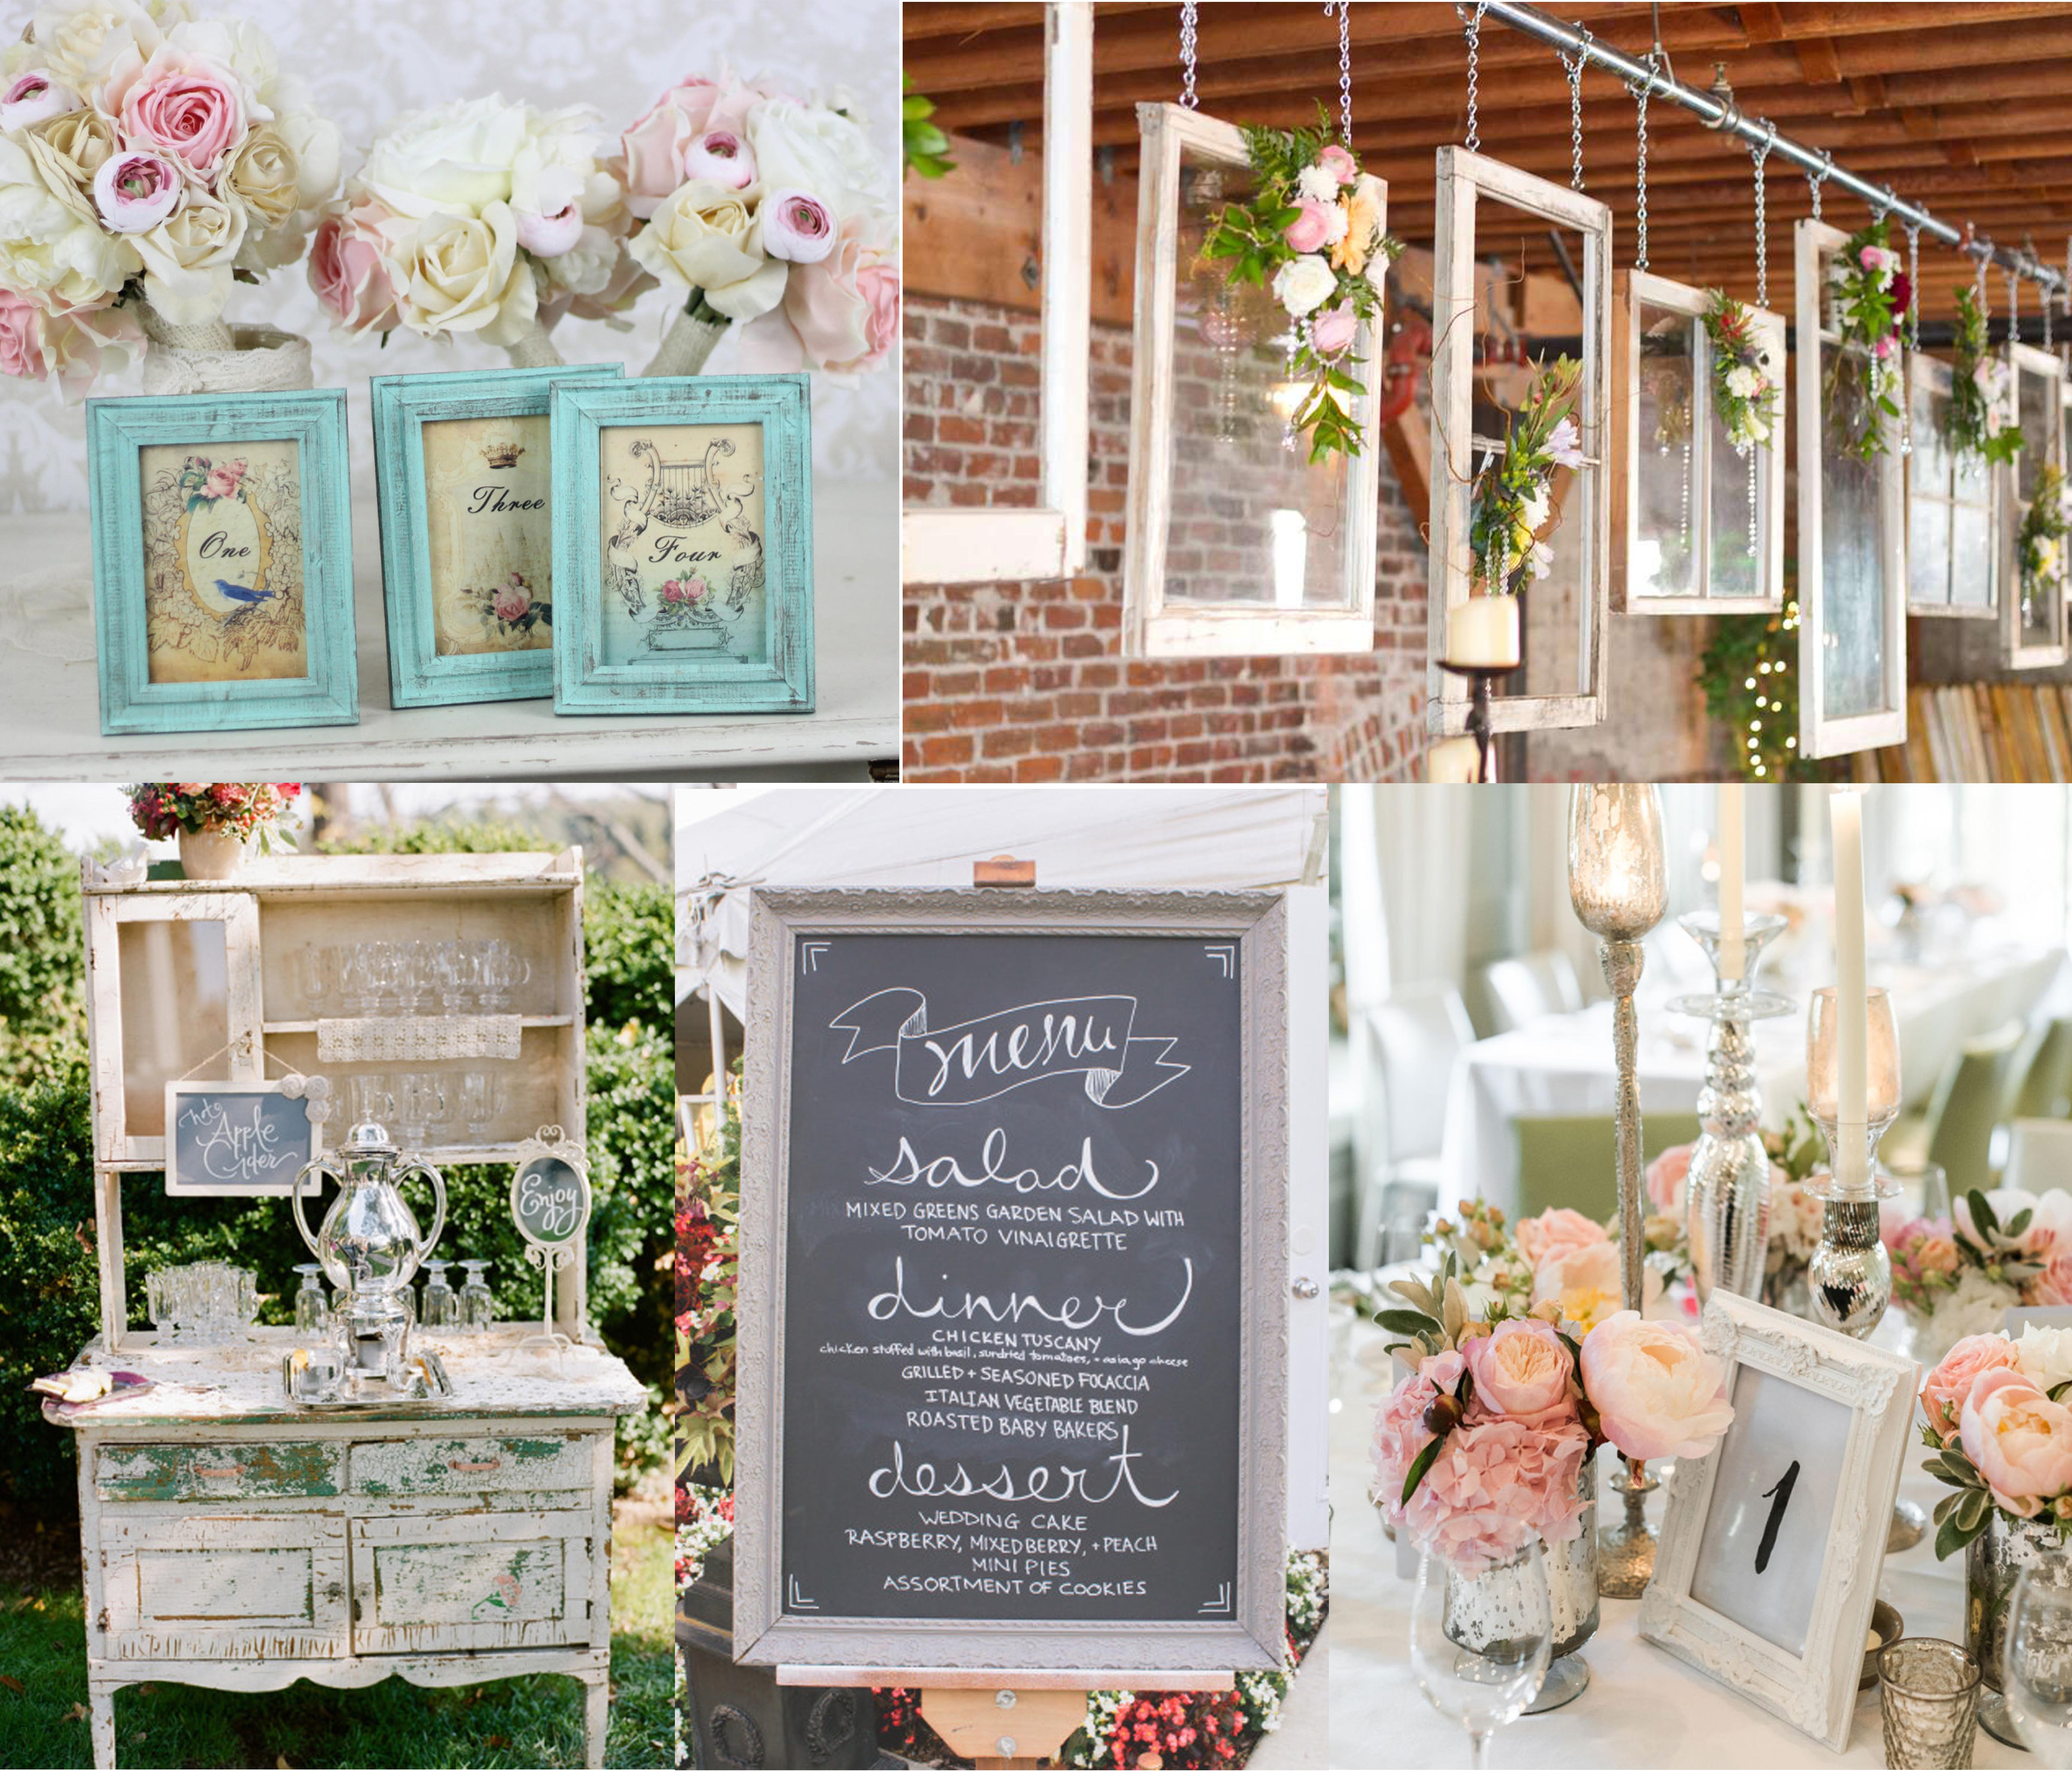 Shabby chic wedding reception food ideas 28 images for Maison chic shabby chic